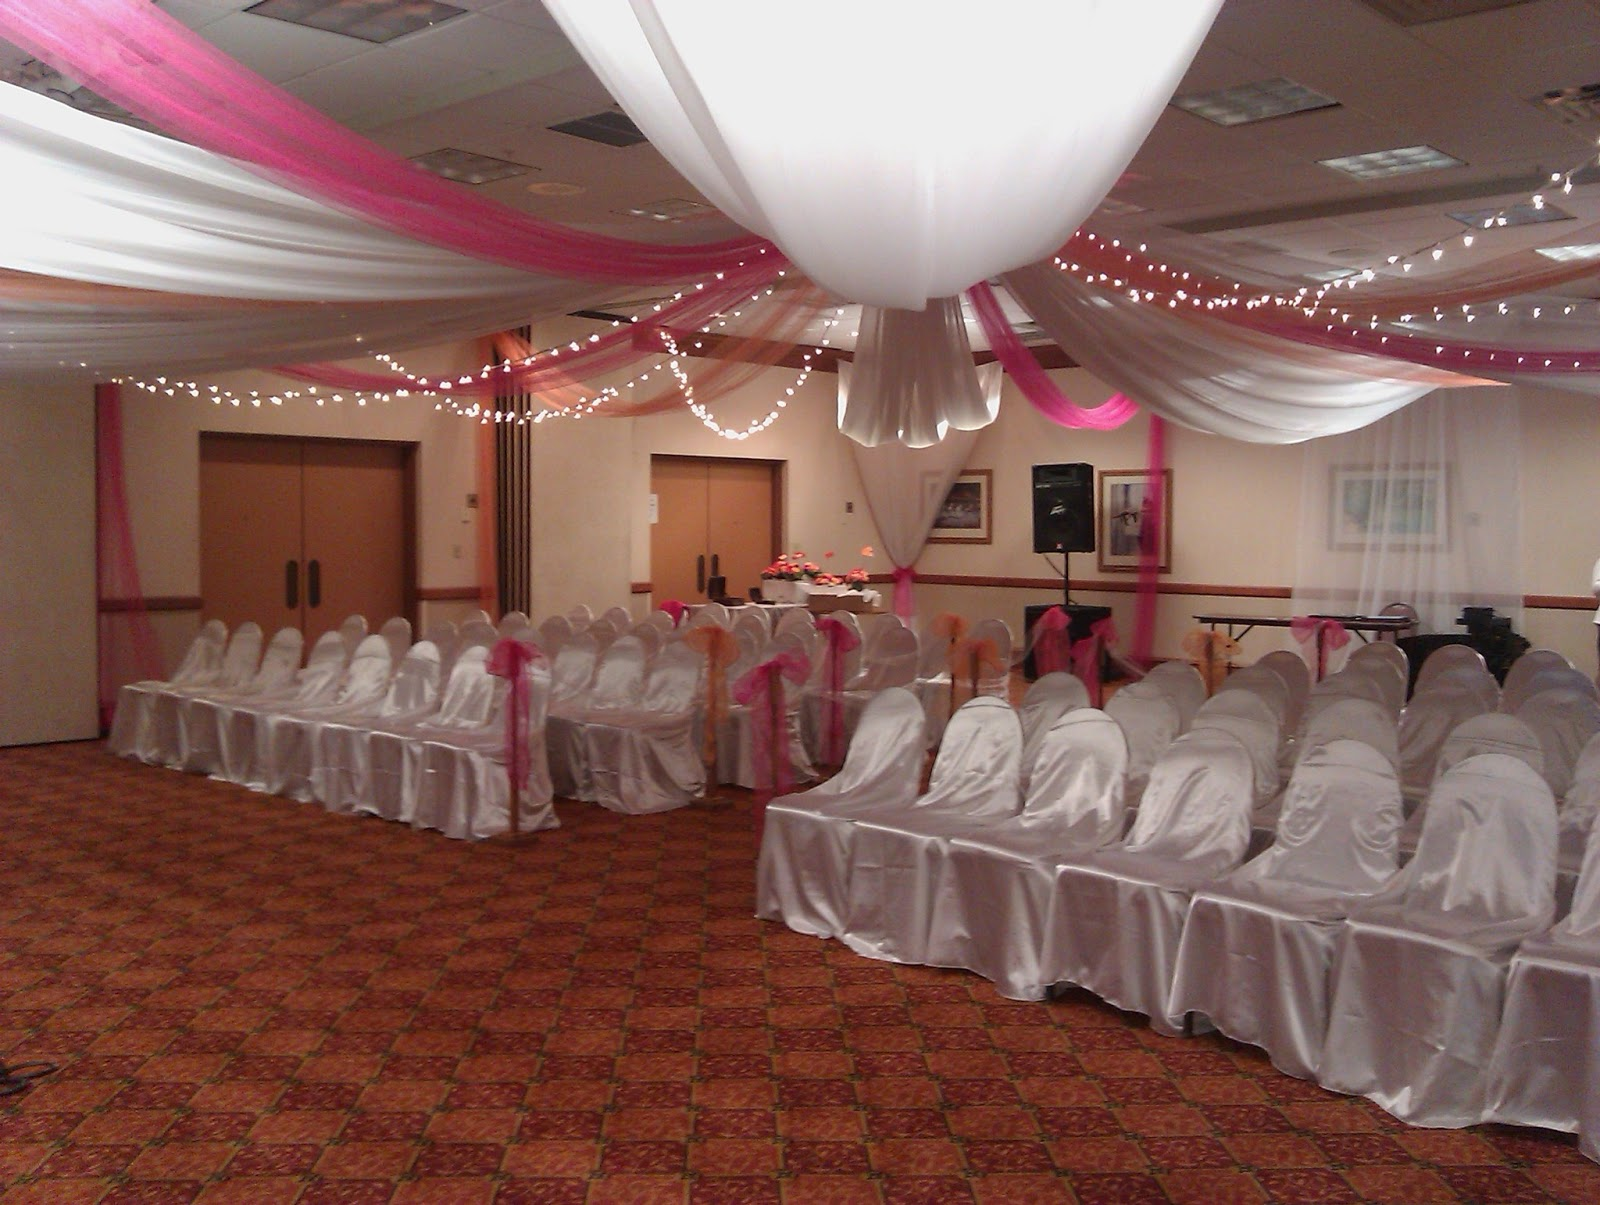 Renting A Hall For A Wedding